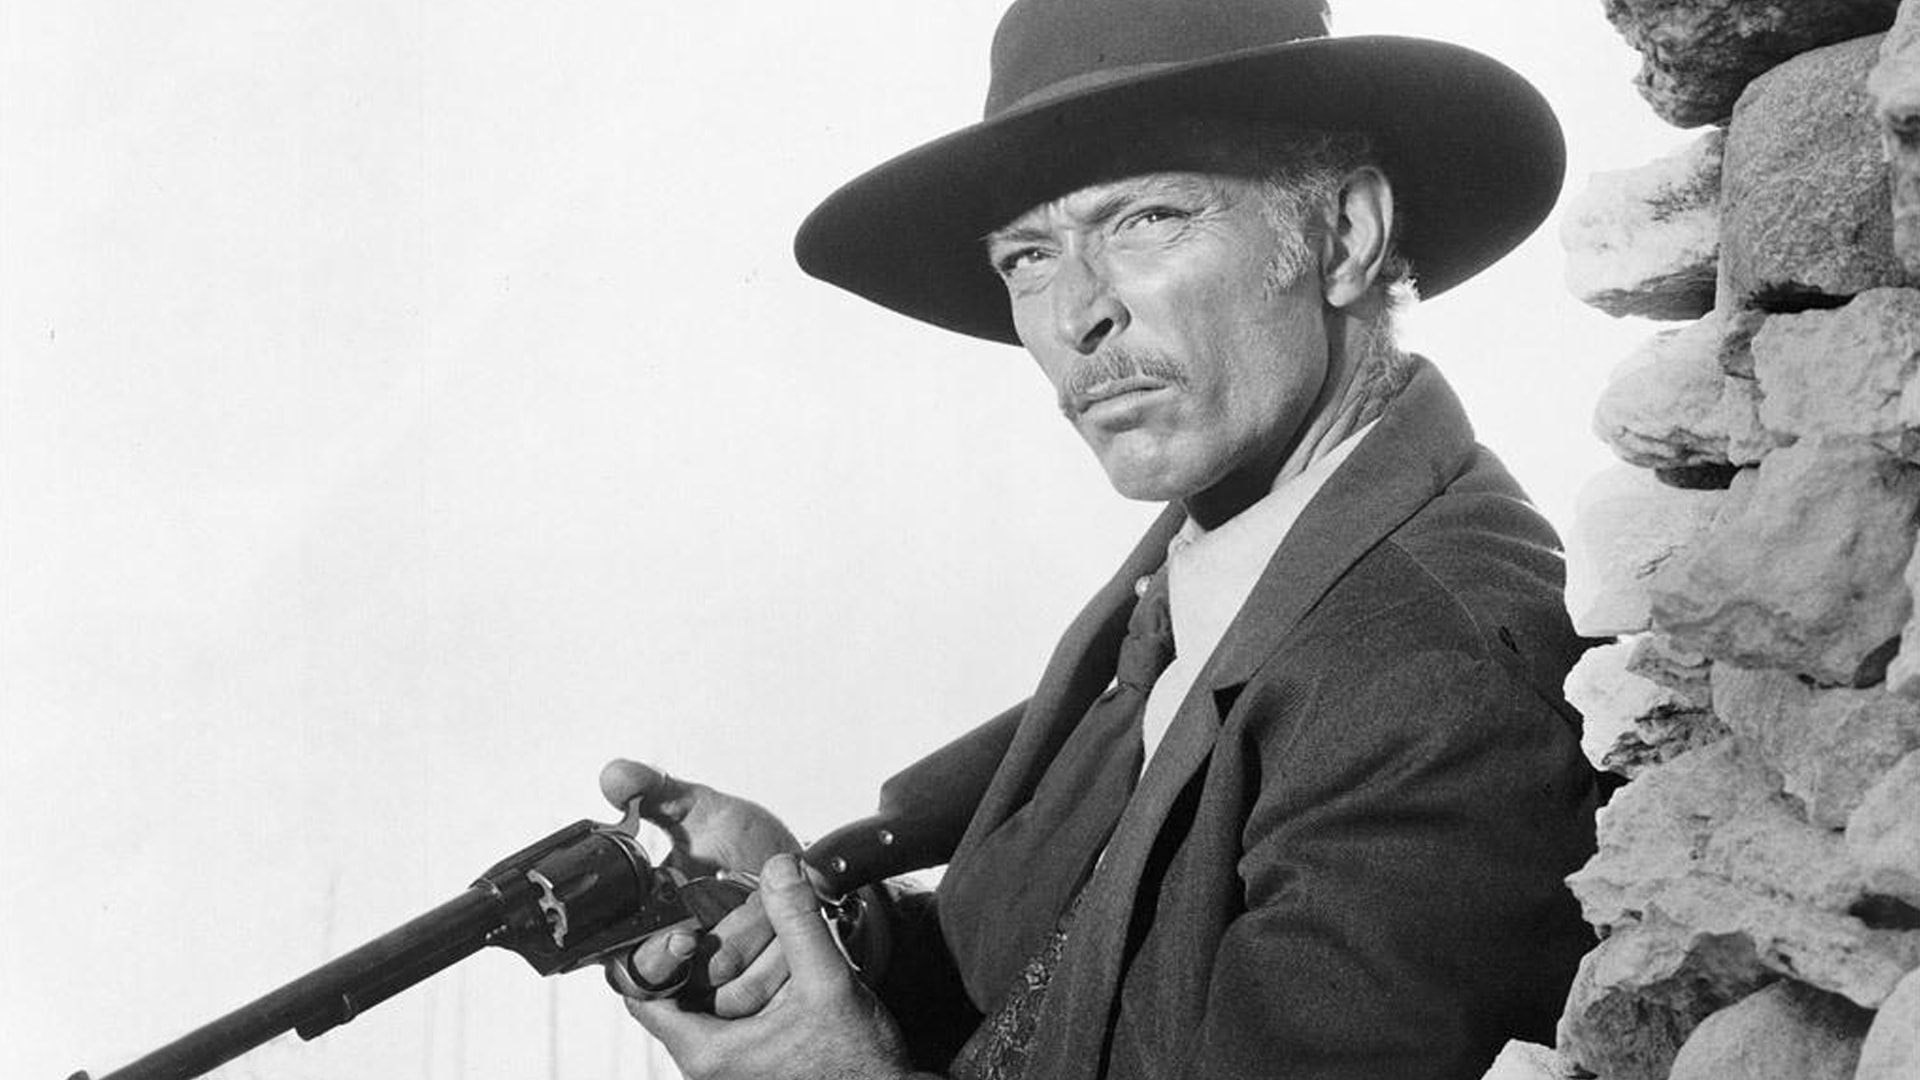 Lee Van Cleef HQ wallpapers